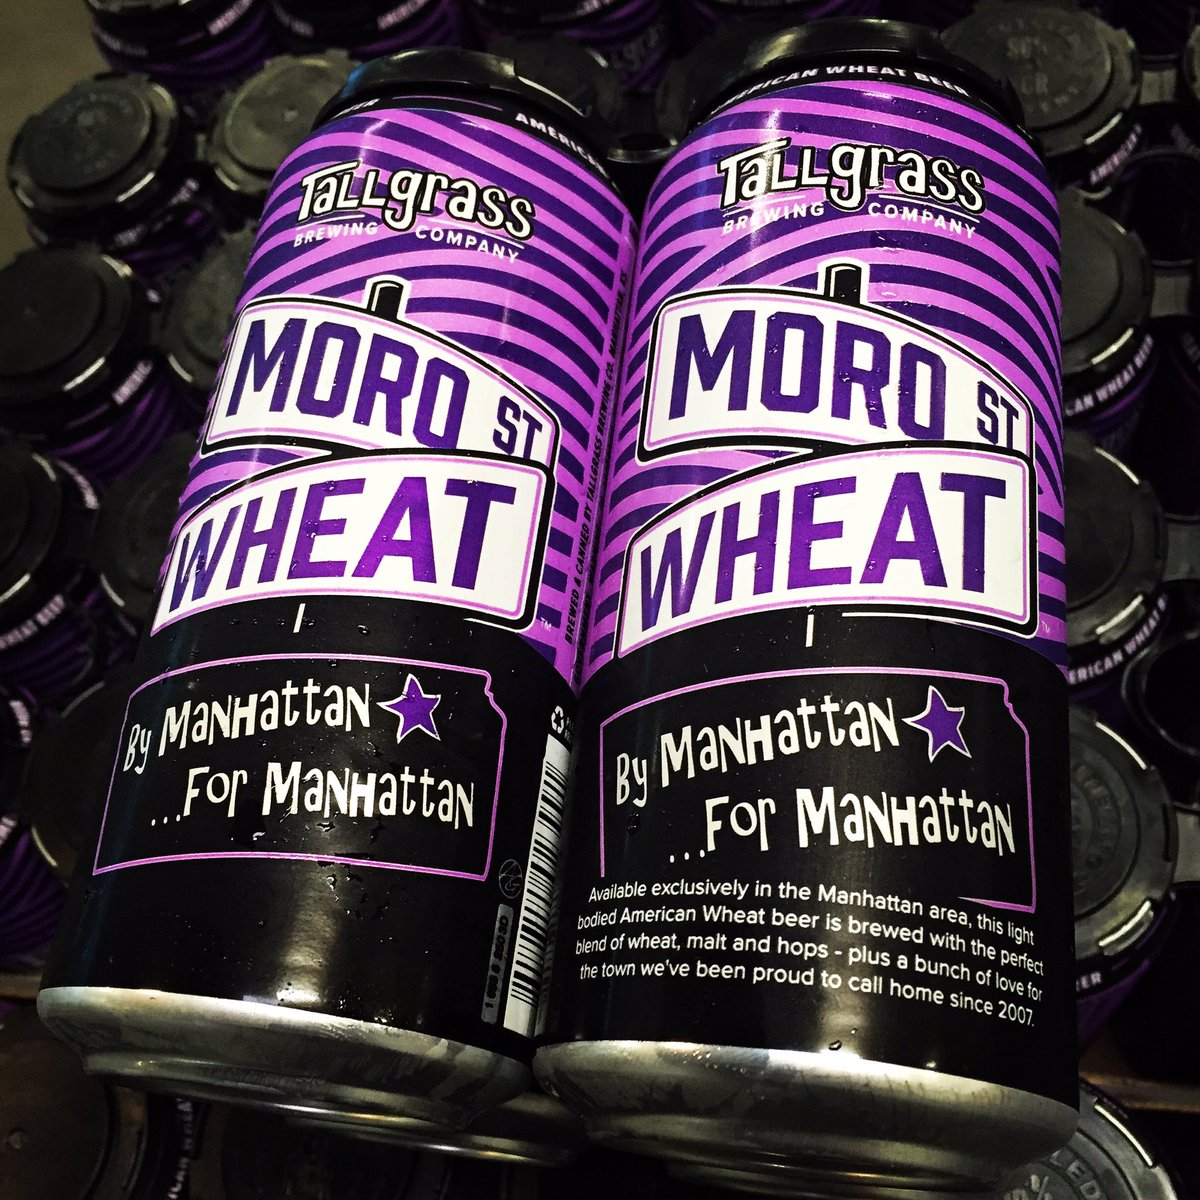 Moro St. Wheat Manhattan-exclusive wheat beer hits shelves Friday before @KStateFB home opener this weekend! https://t.co/1o4VPWXWEB